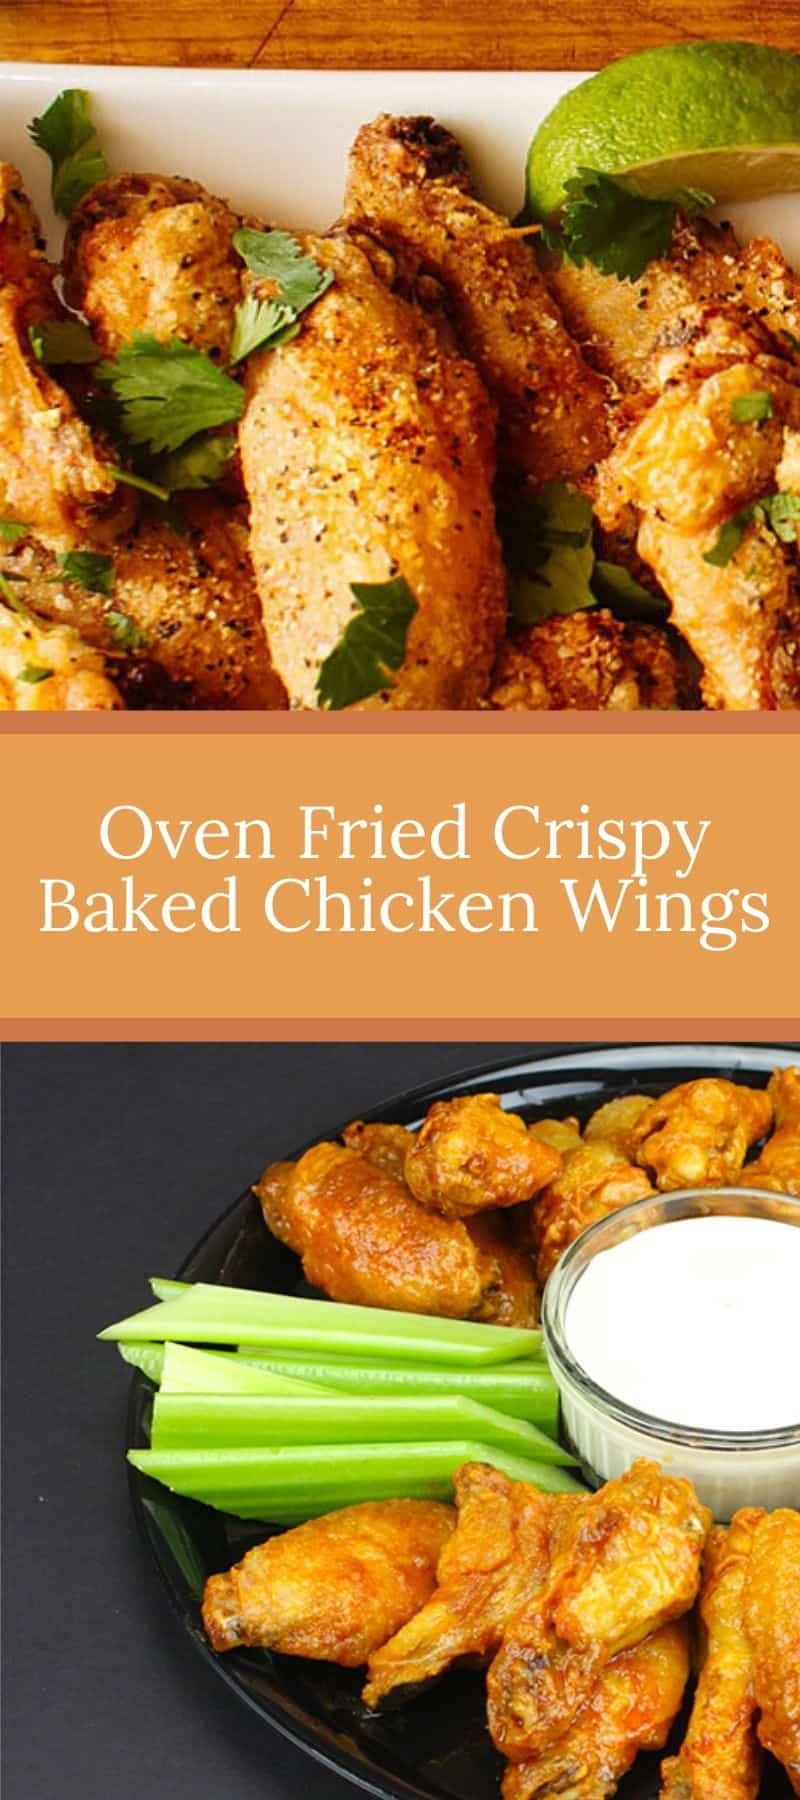 Oven Fried Crispy Baked Chicken Wings 3